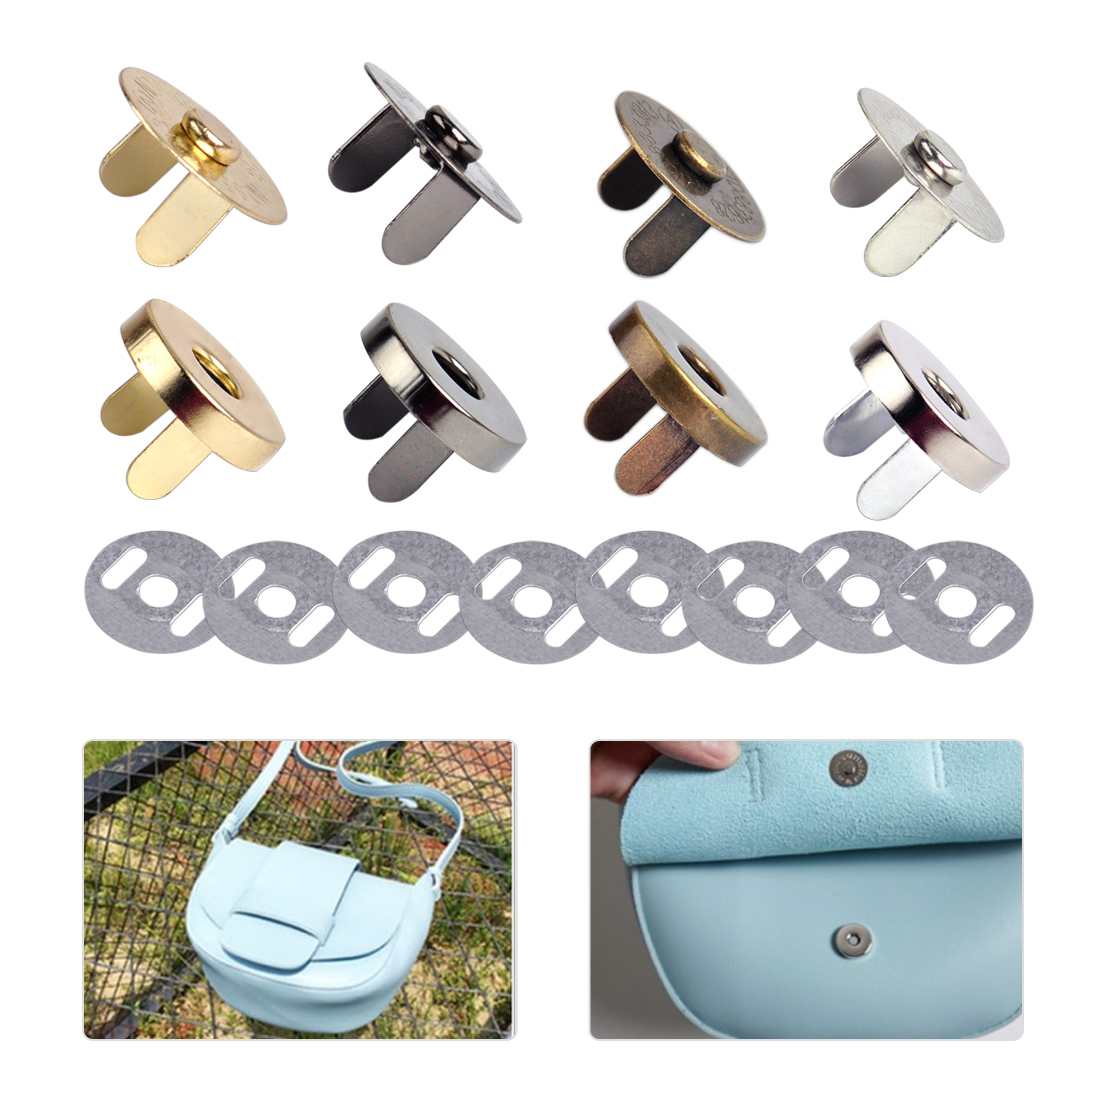 18mm Bag Purse Round Magnetic Snaps Closures Button Clasp